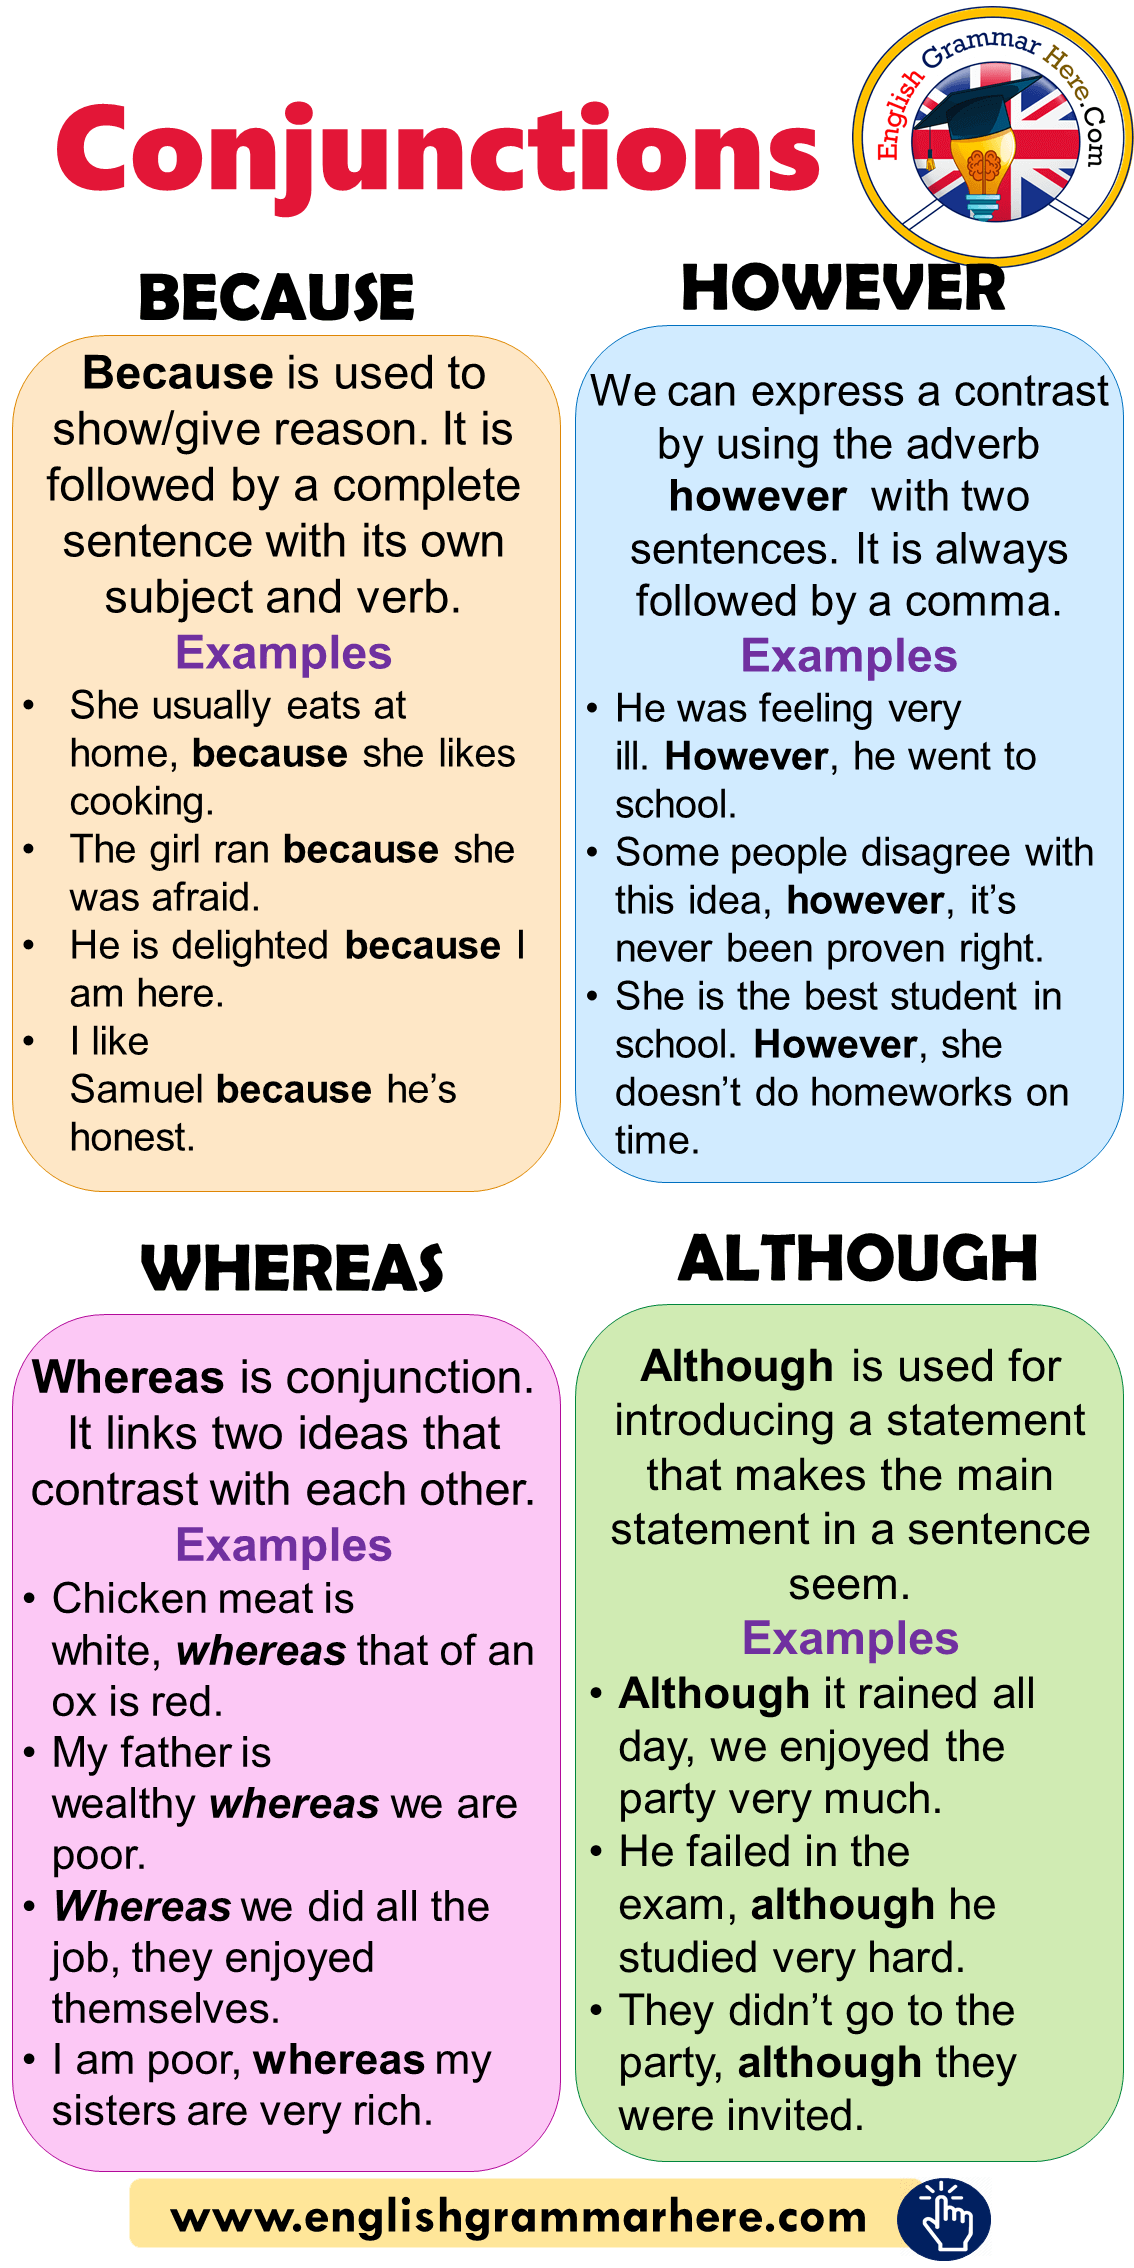 English Conjunctions - Using Because, However, Whereas, Although and Example Sentences